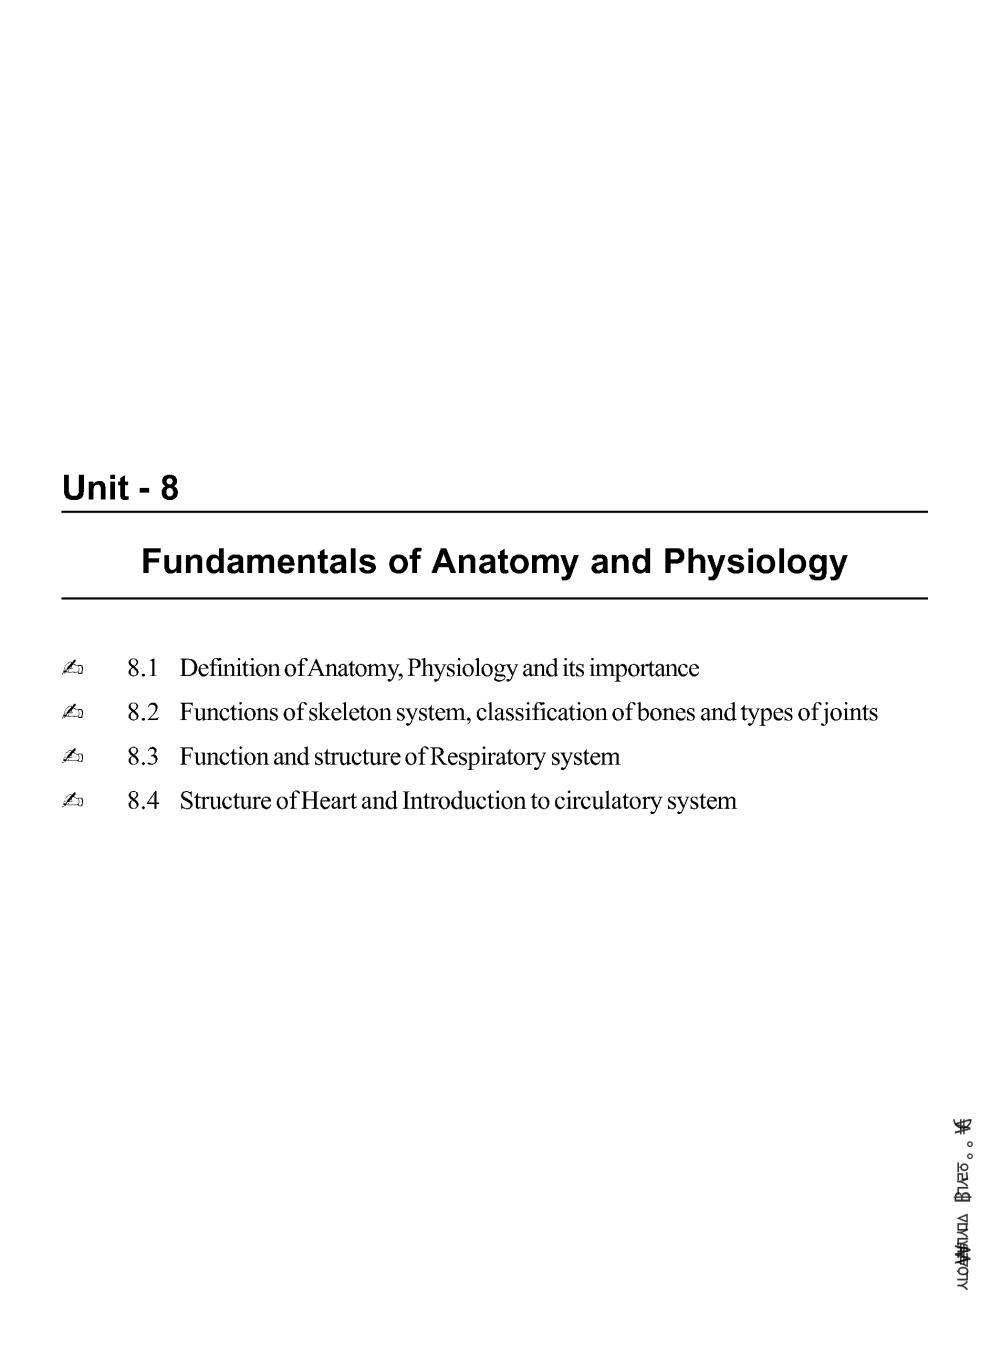 Class 11 Physical Education Notes For Fundamentals of Anatomy and